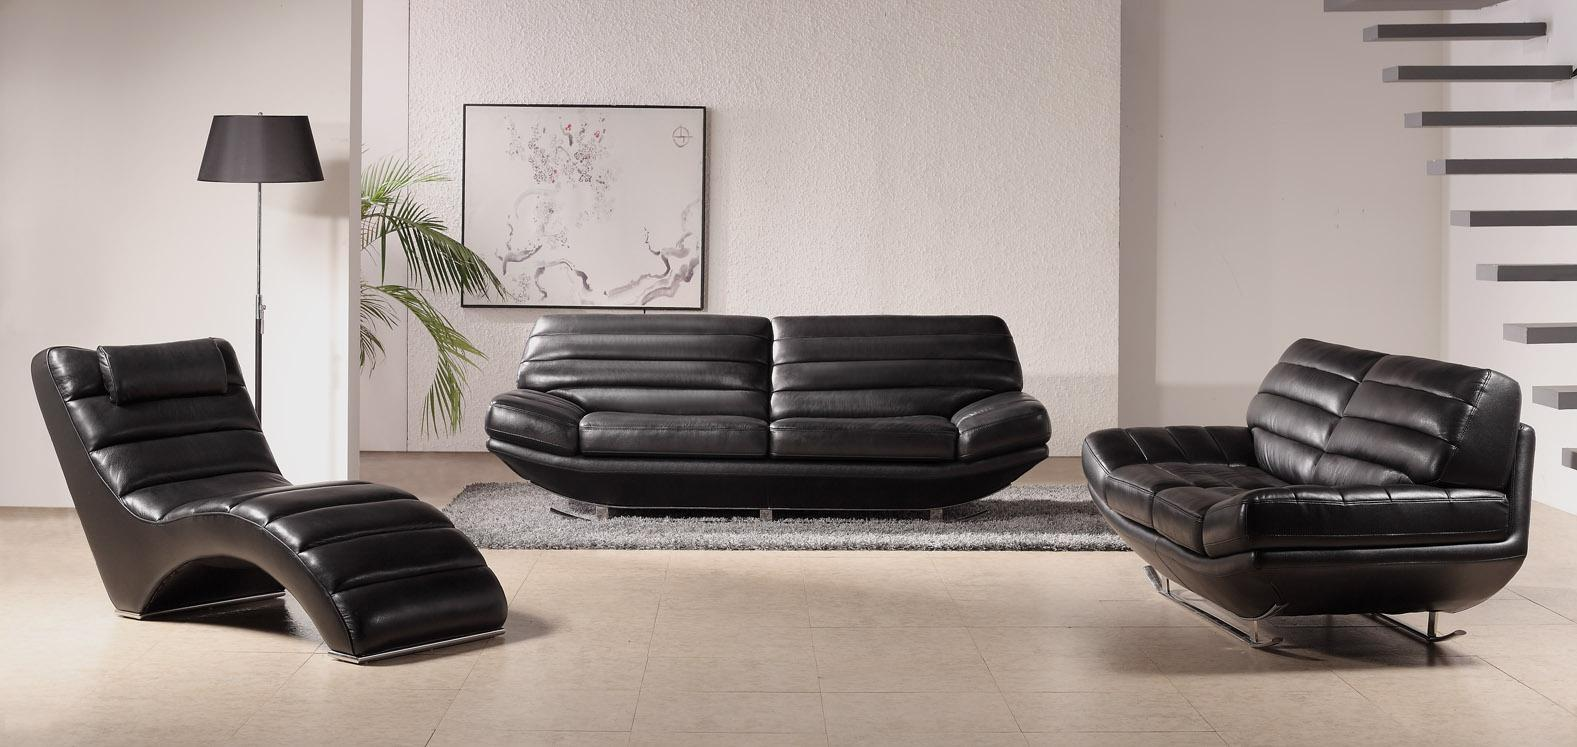 Know about types of couches and sofas my decorative for Leather couch family room